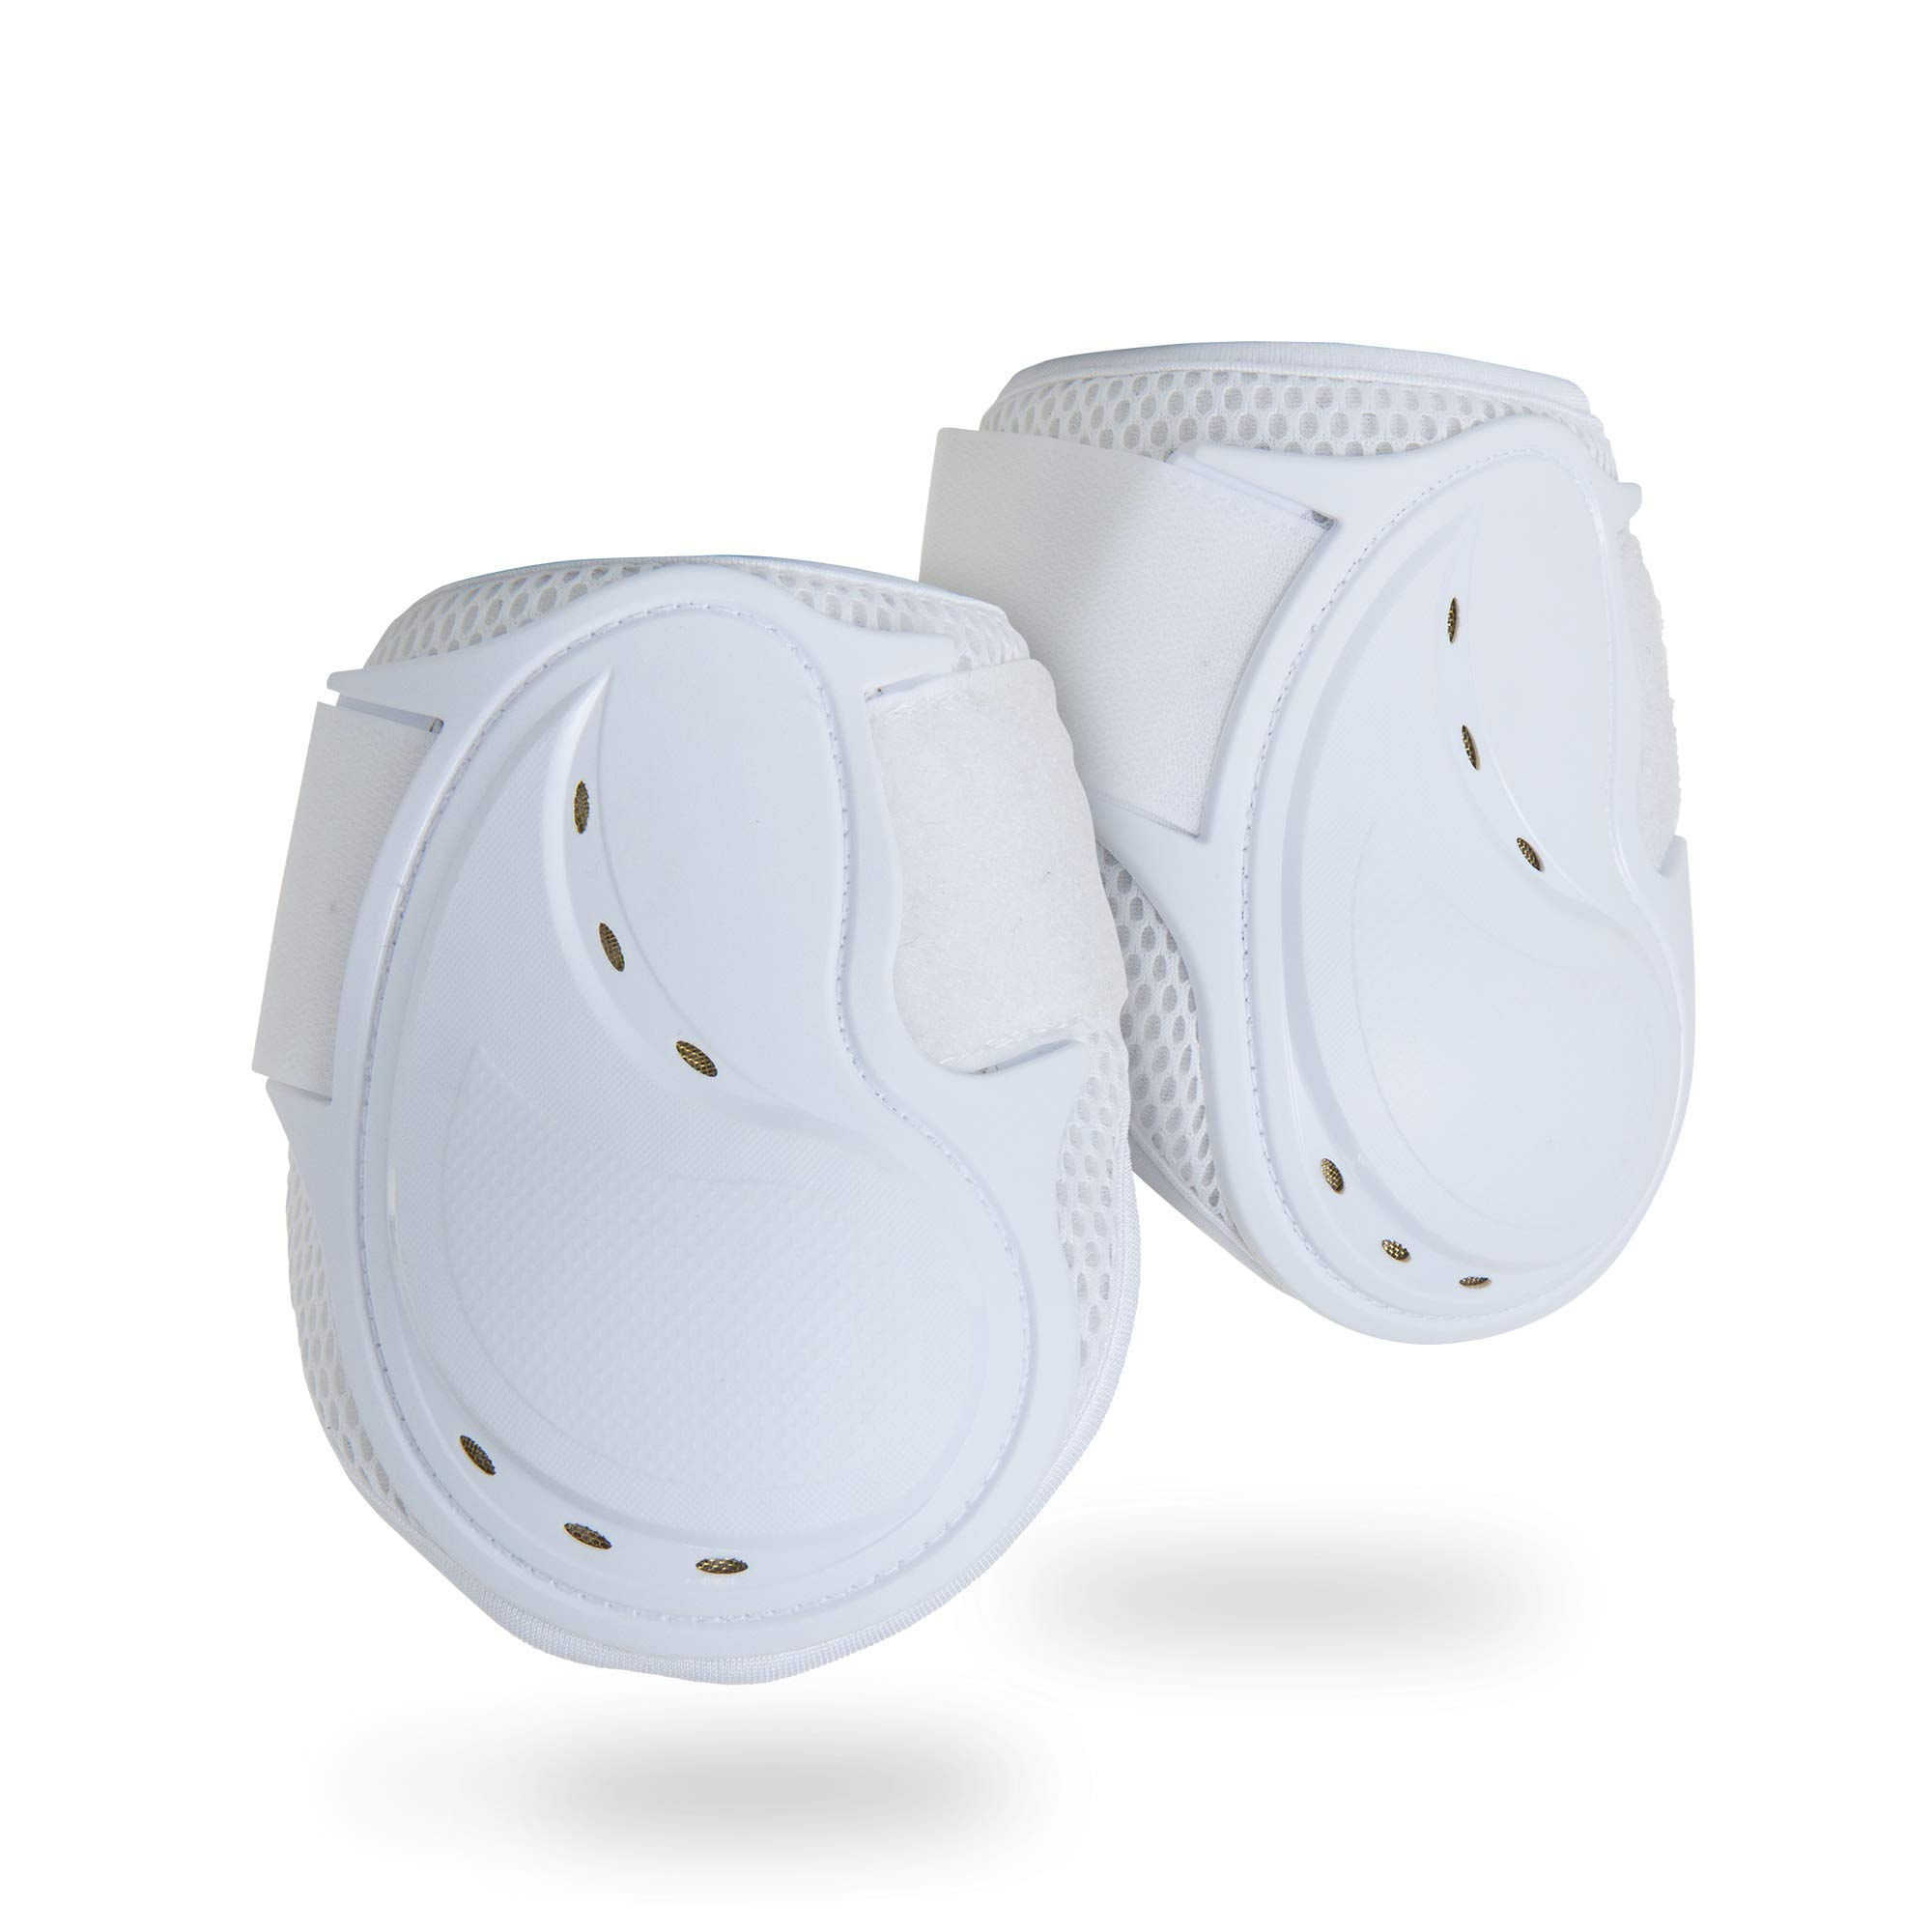 Kavallerie Classic Fetlock Boots, Impact-Absorbing and Air-Perforated Material, Durable & Evenly Distributes Pressure, Fetlock Injury Protection, Non- Slip with Soft Lining Show Jumping Boots